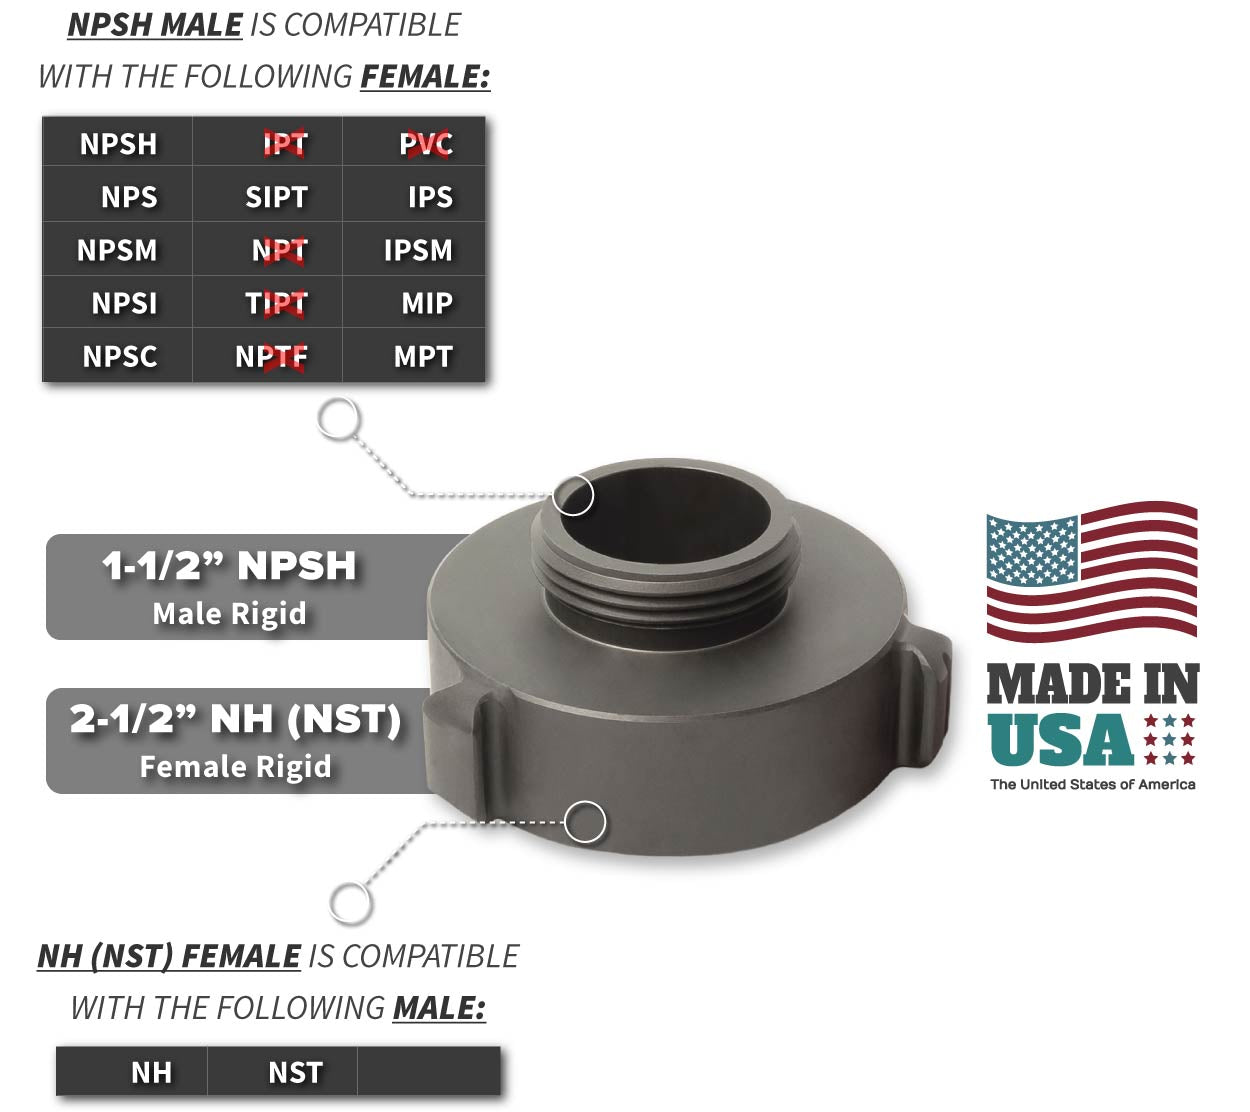 2.5 Inch NH-NST Female x 1.5 Inch NPSH Male Compatibility Thread Chart